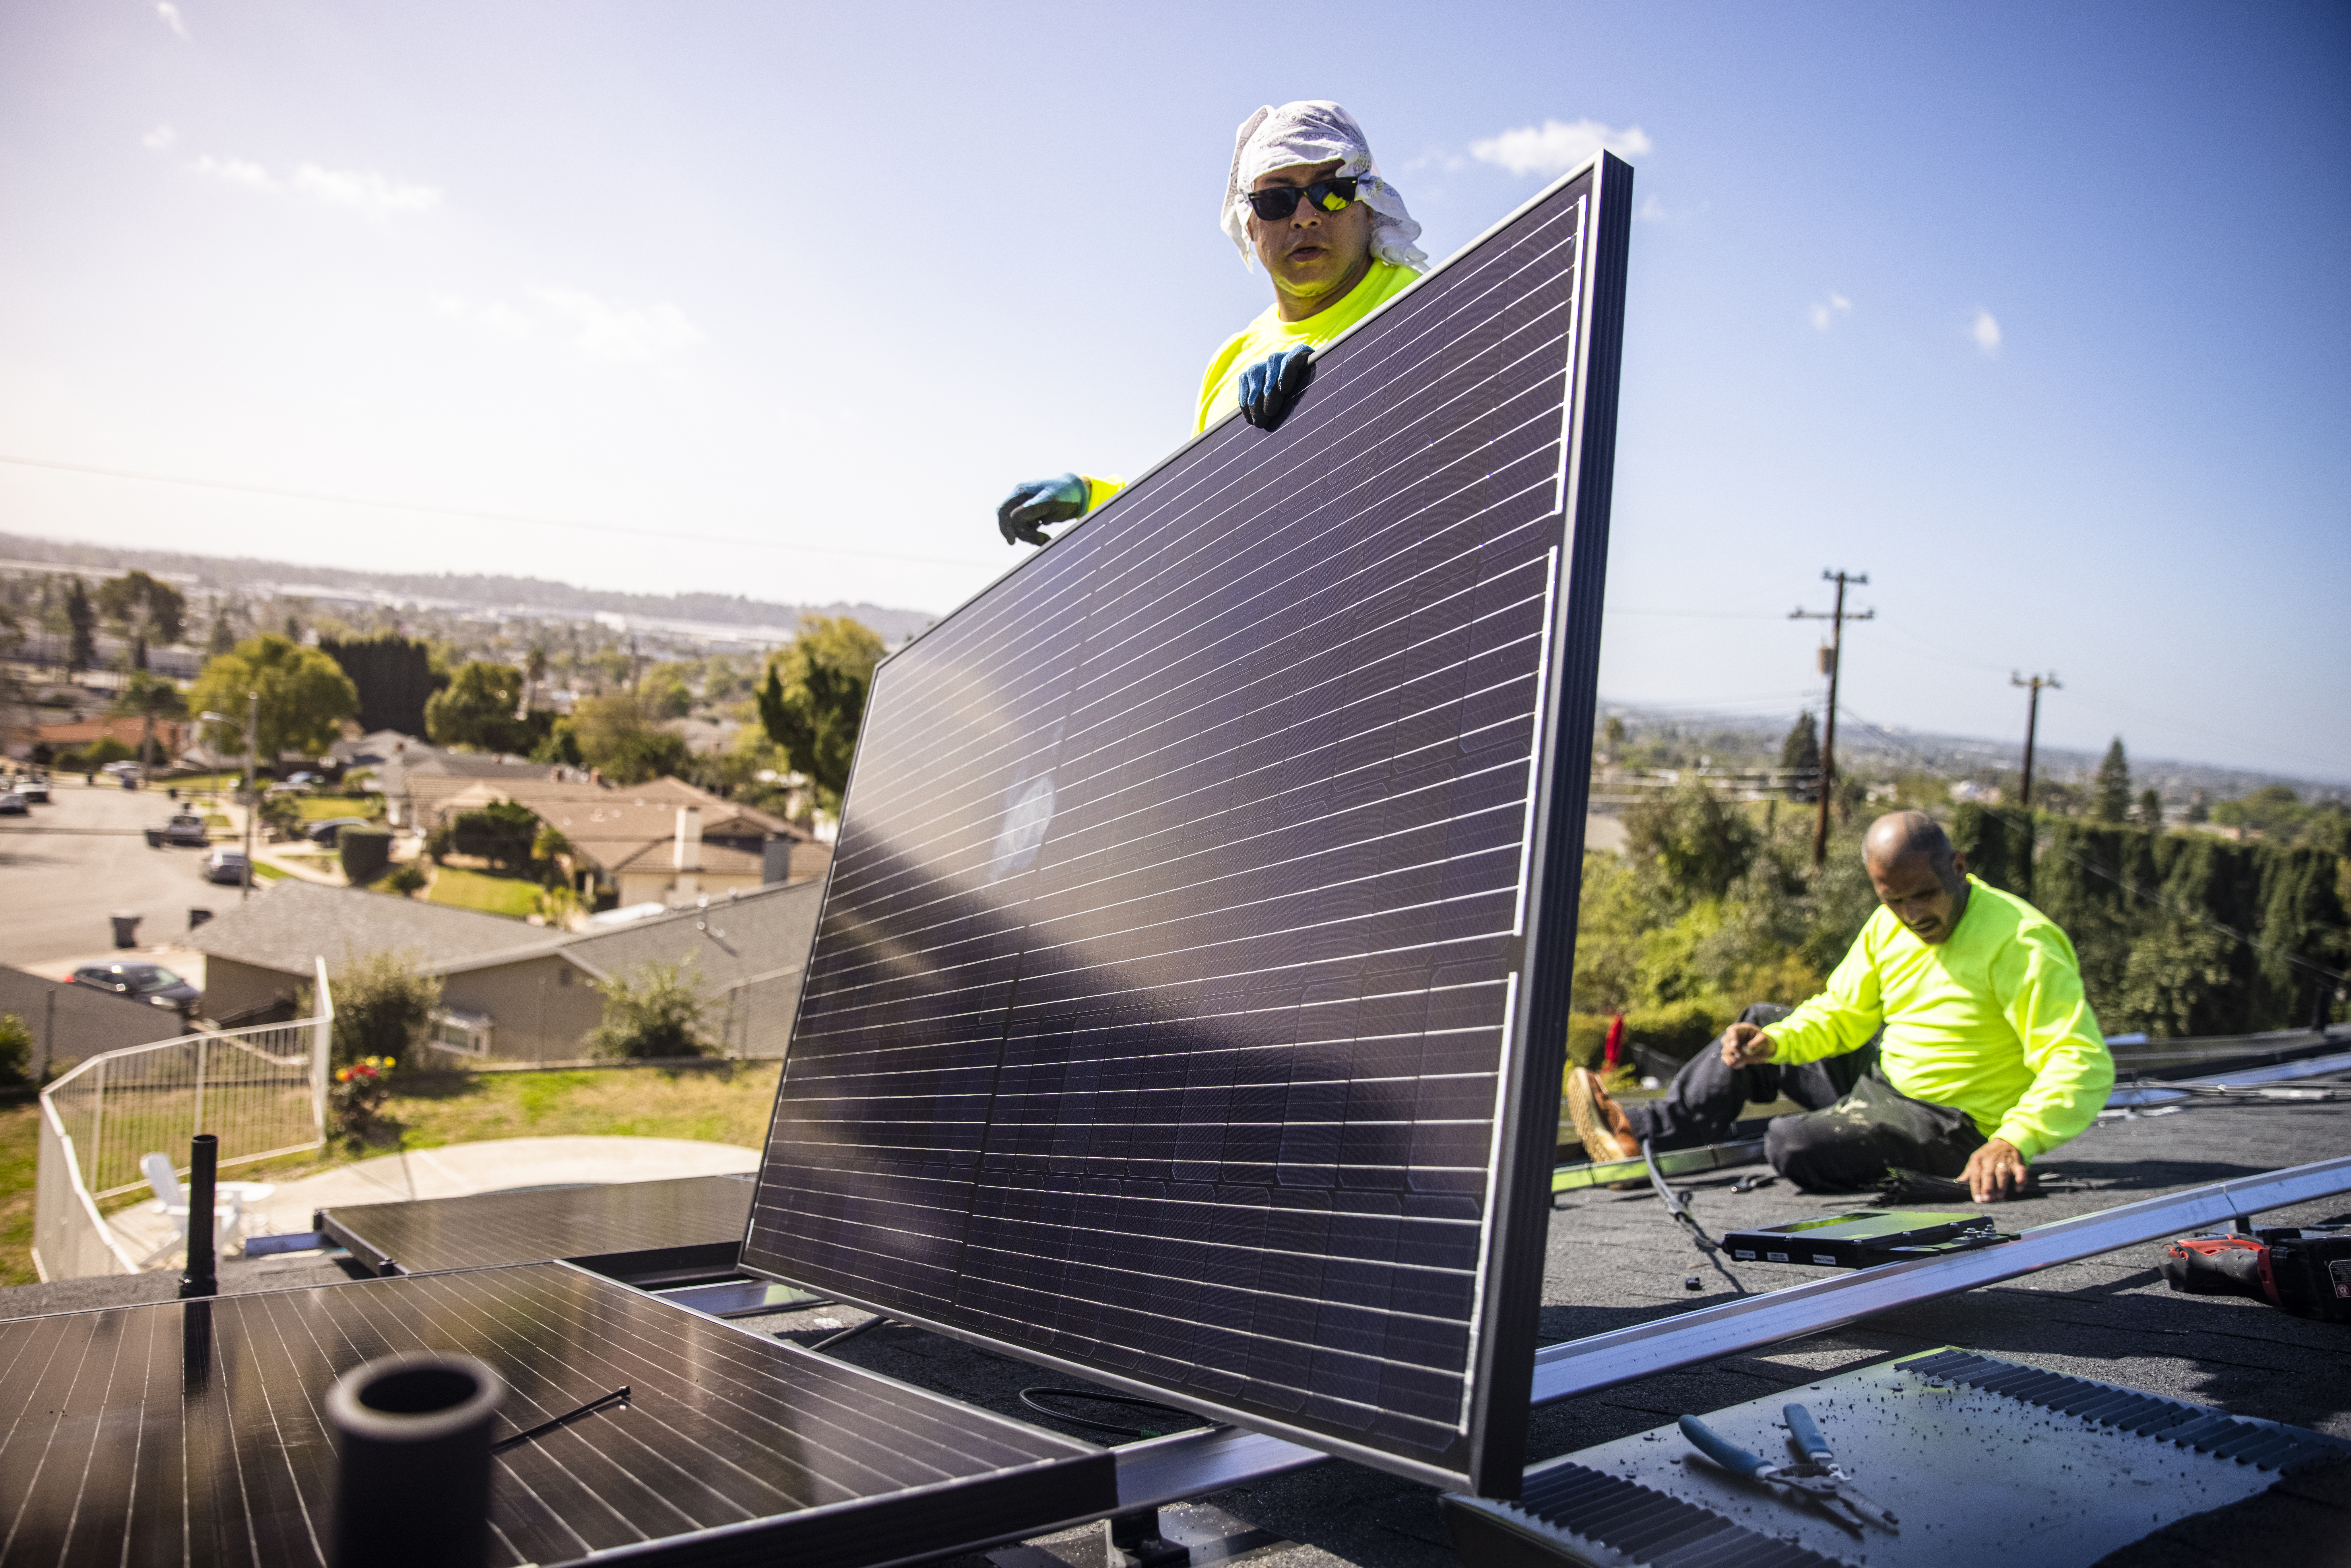 Team of Workers Installing Solar Panels on Residential Rooftop in California